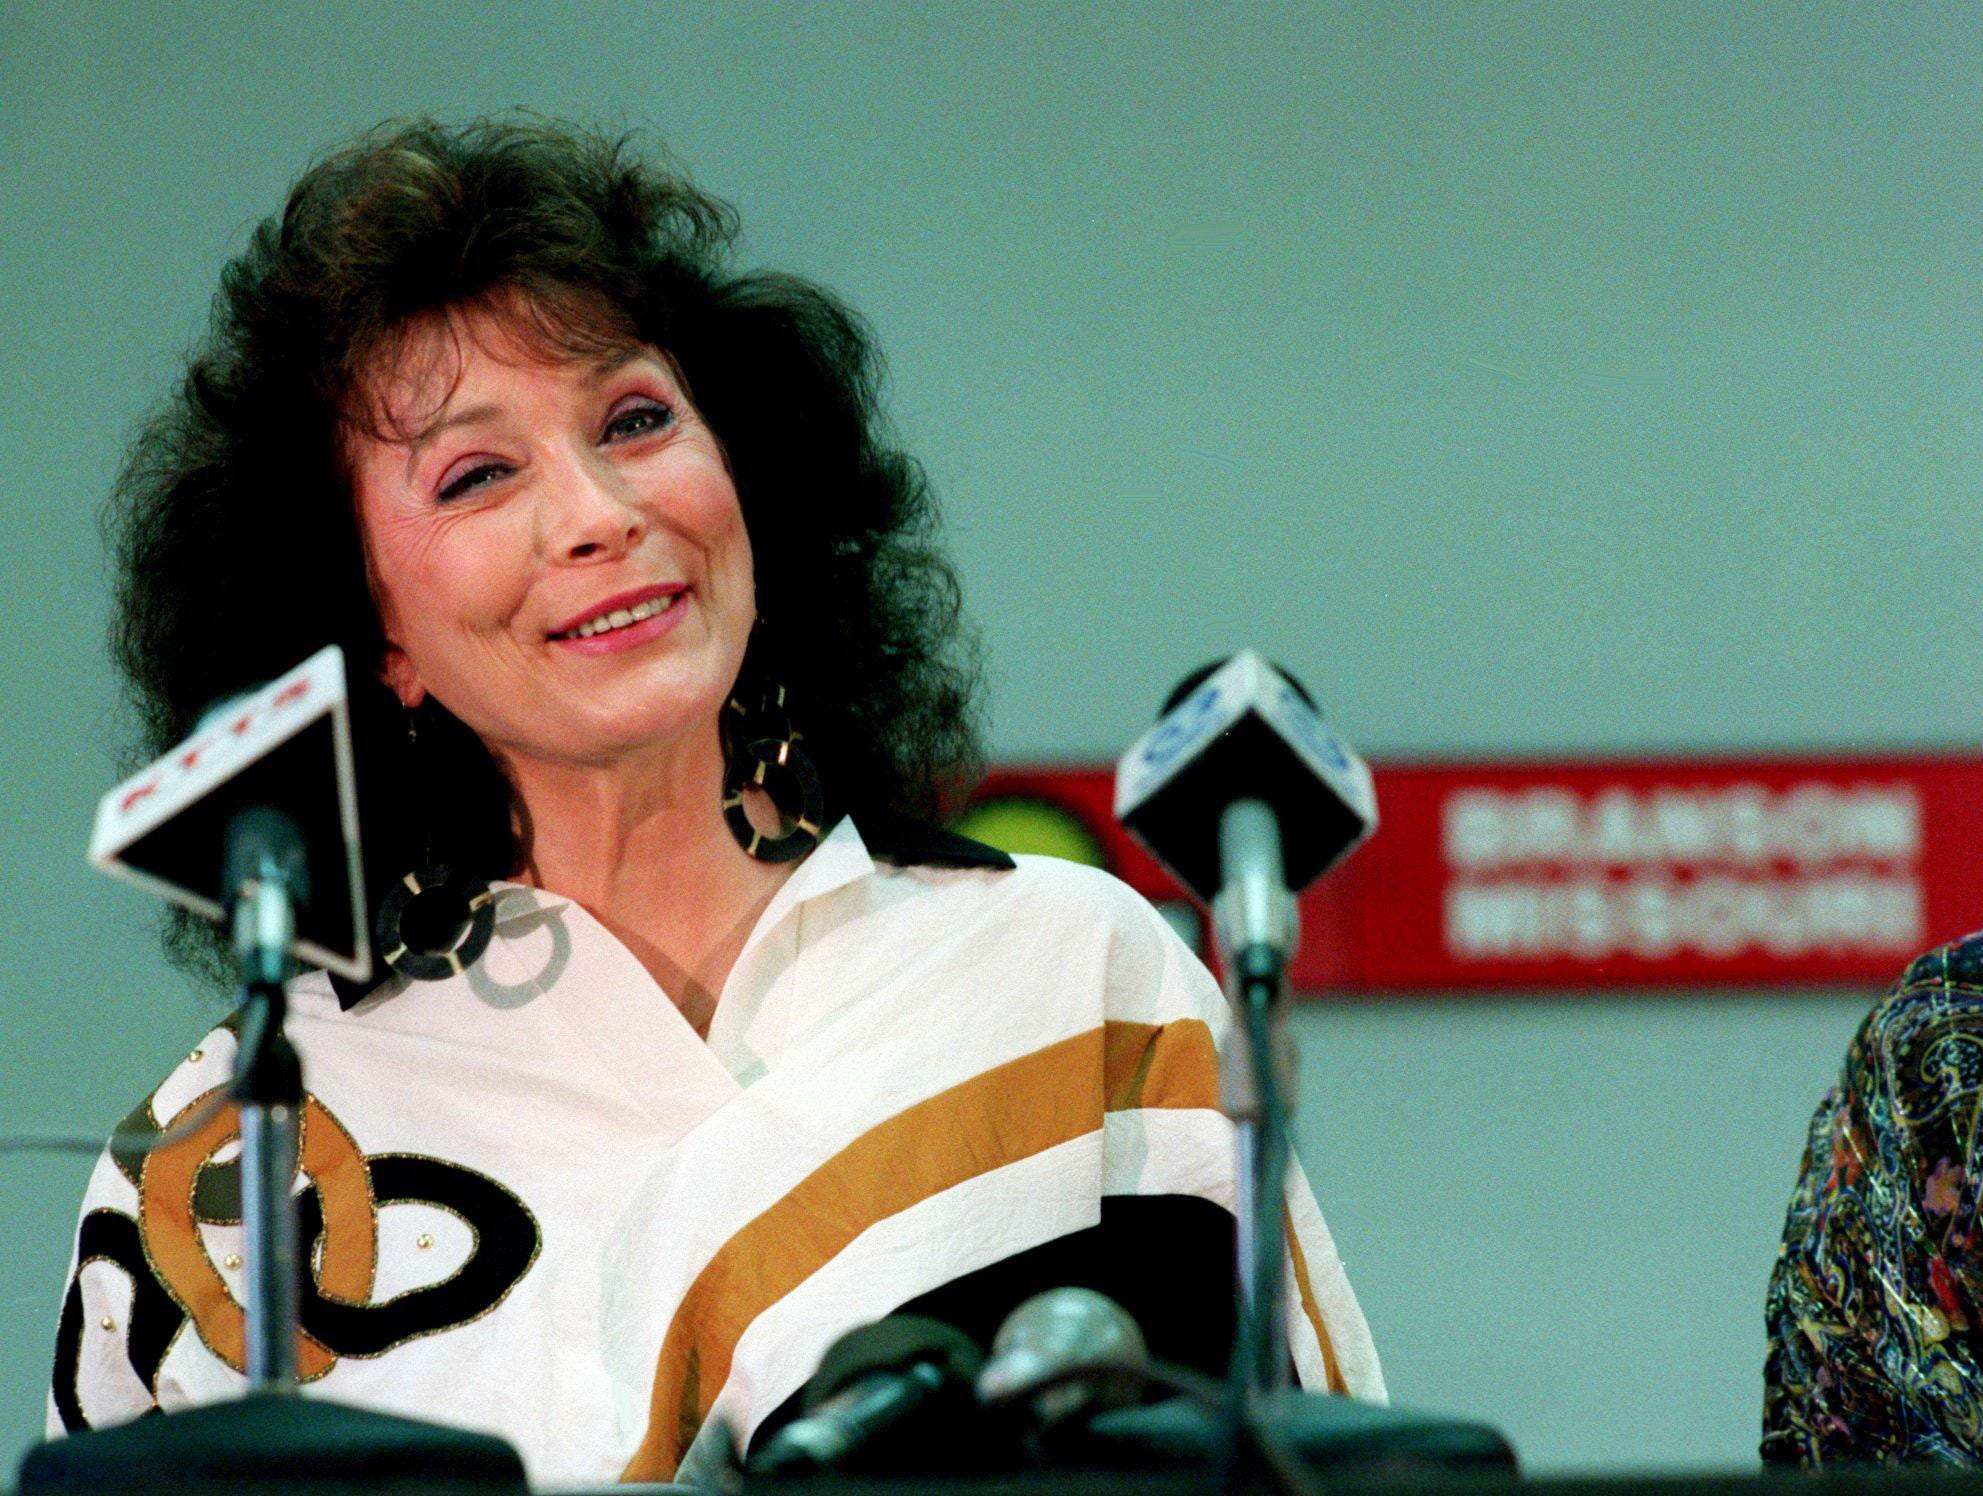 Loretta Lynn is holding a press conference in Branson, Missouri, Sept. 23, 1991 to make the announcement about her plans to perform in that city during the Christmas holidays. She is thinking about a more permanent move there.